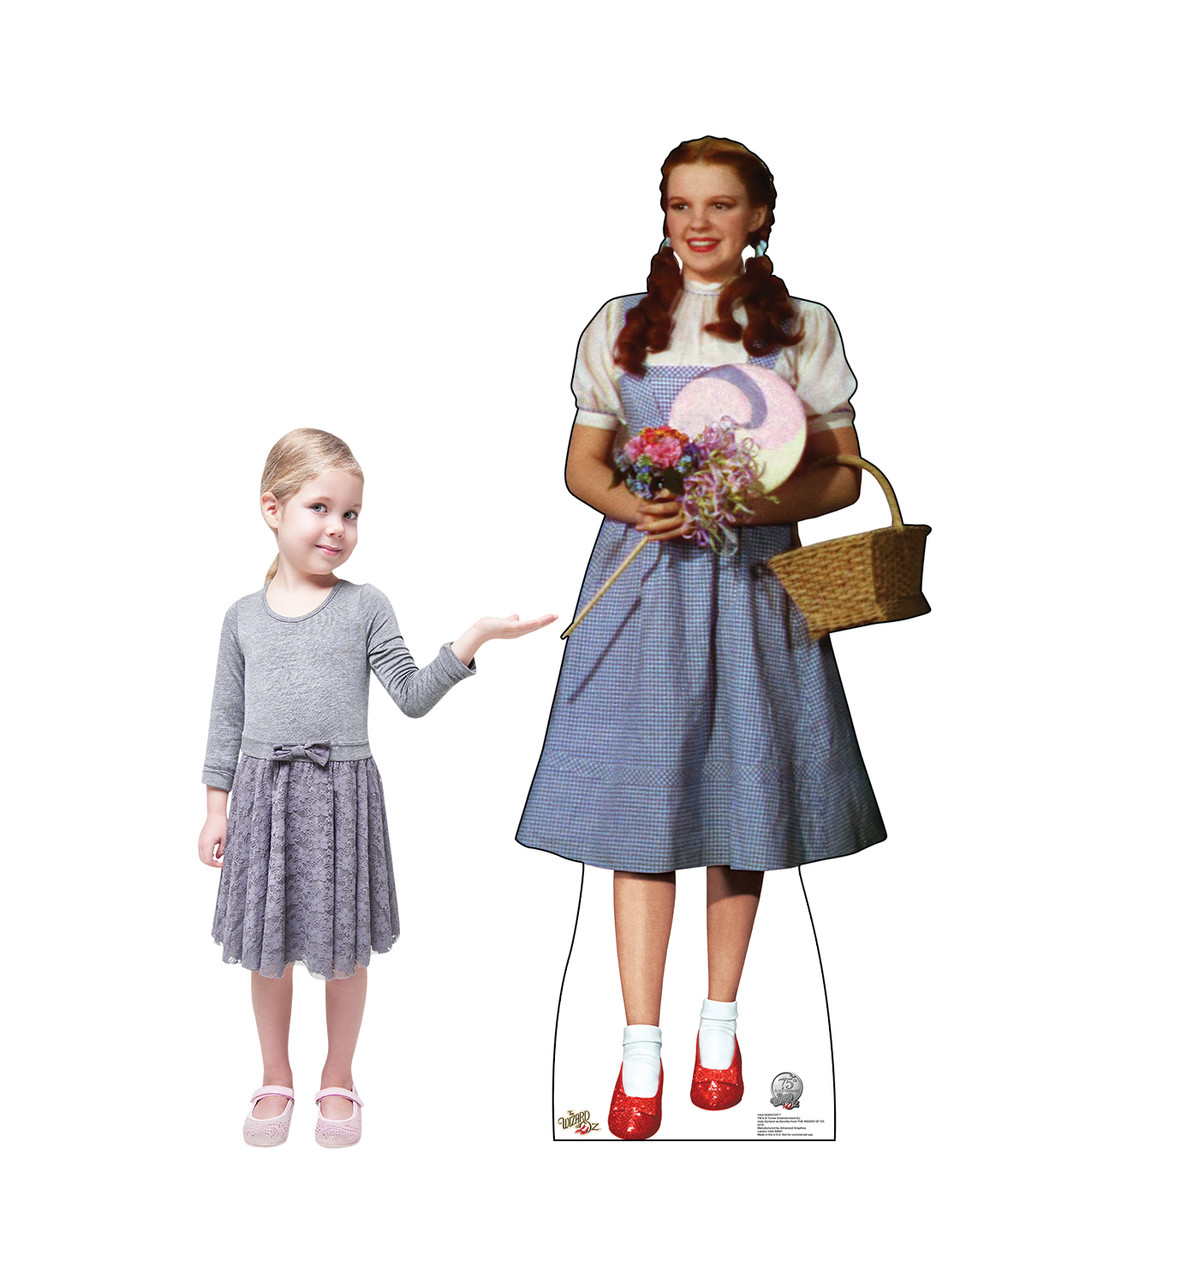 Life-size Dorothy - Wizard of Oz 75th Anniversary Cardboard Standup